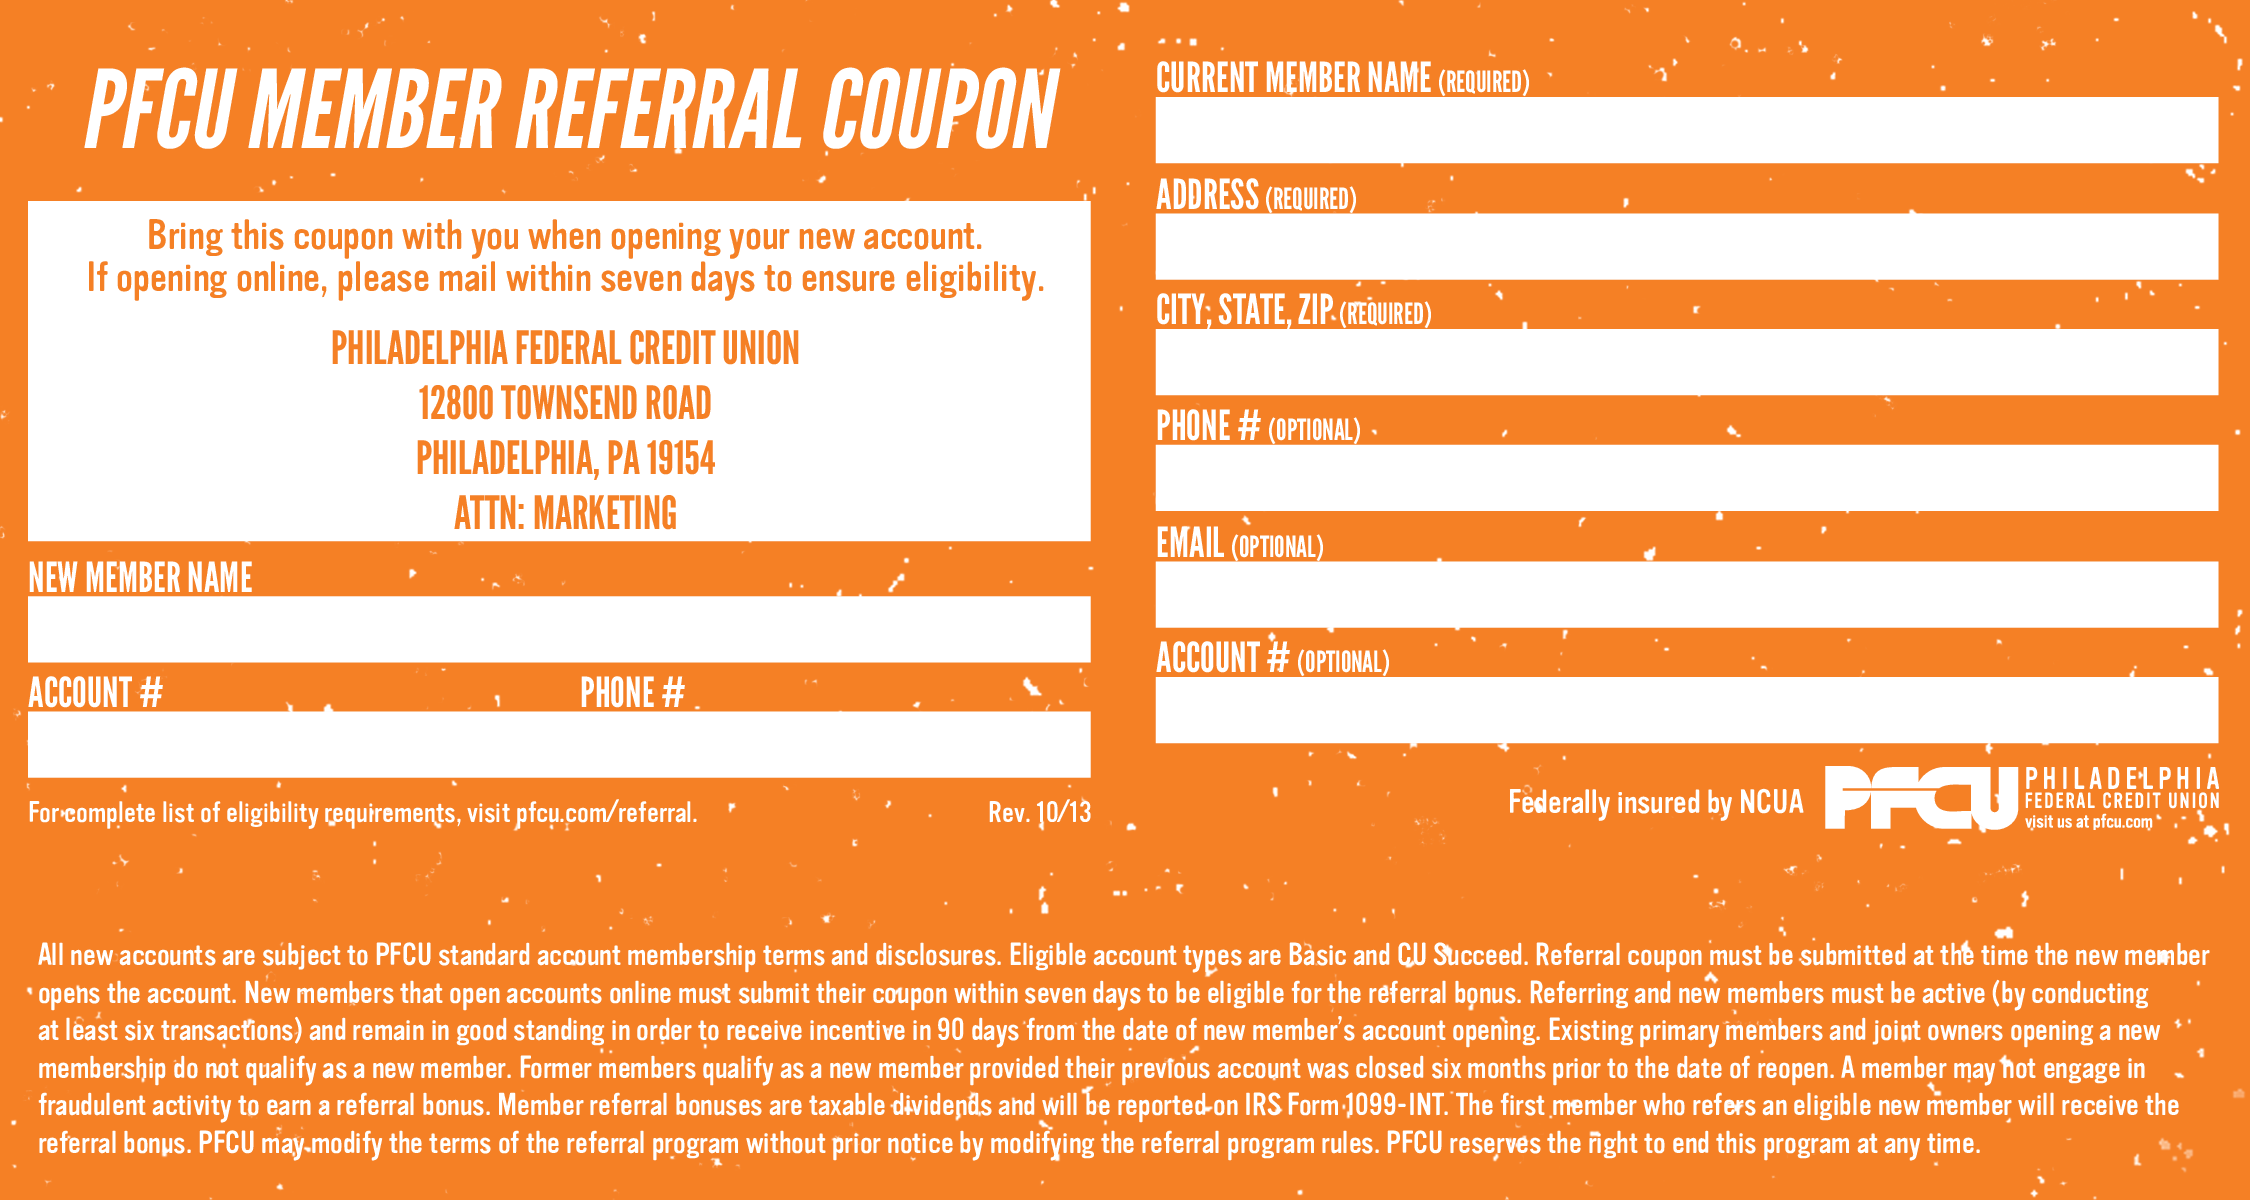 refer a friend email template - free member referral coupon template templates at